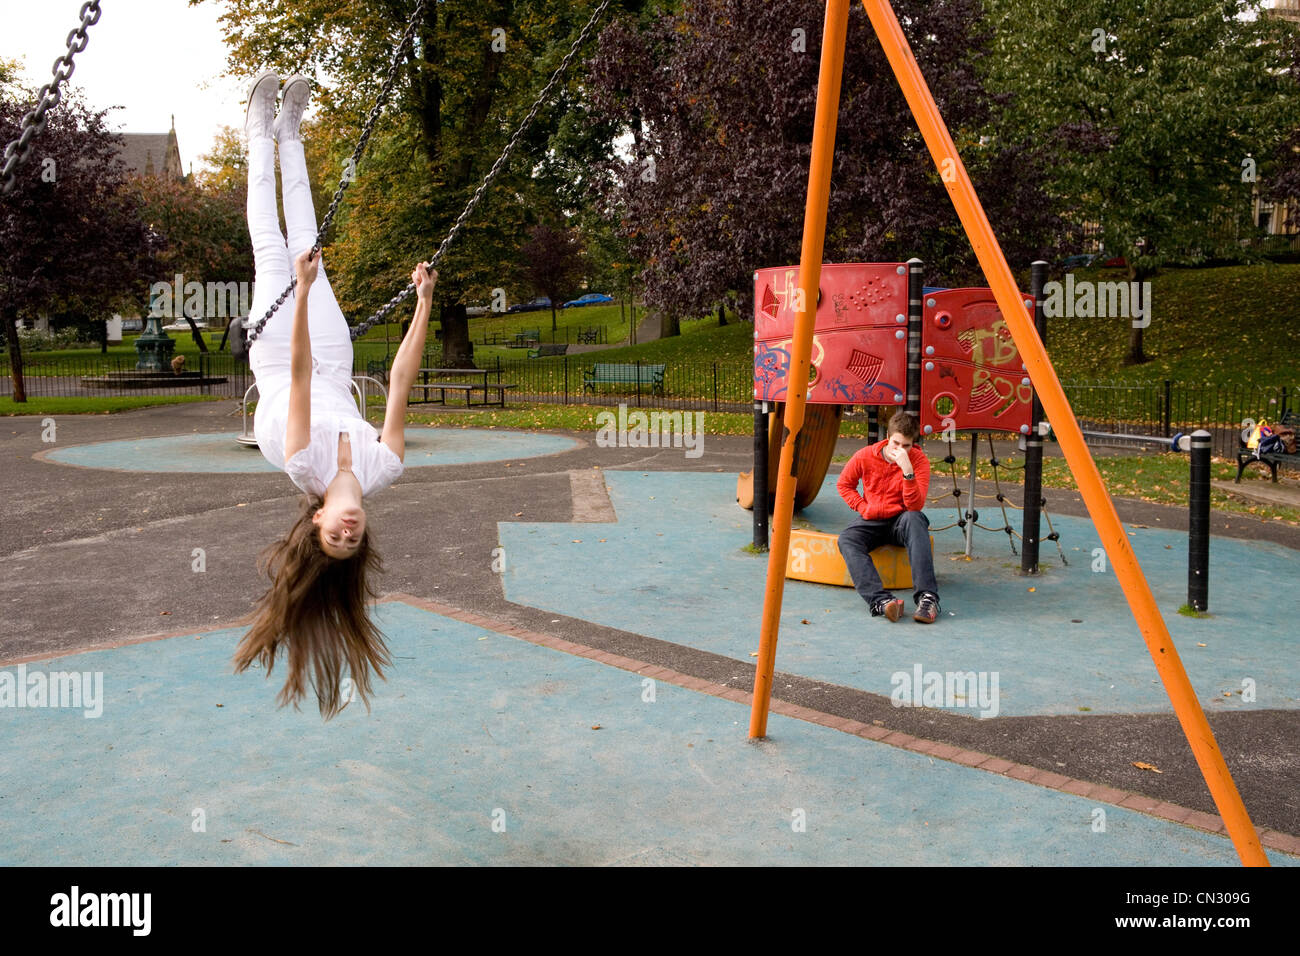 Teenage girl on swing en aire de jeux, à l'envers Banque D'Images